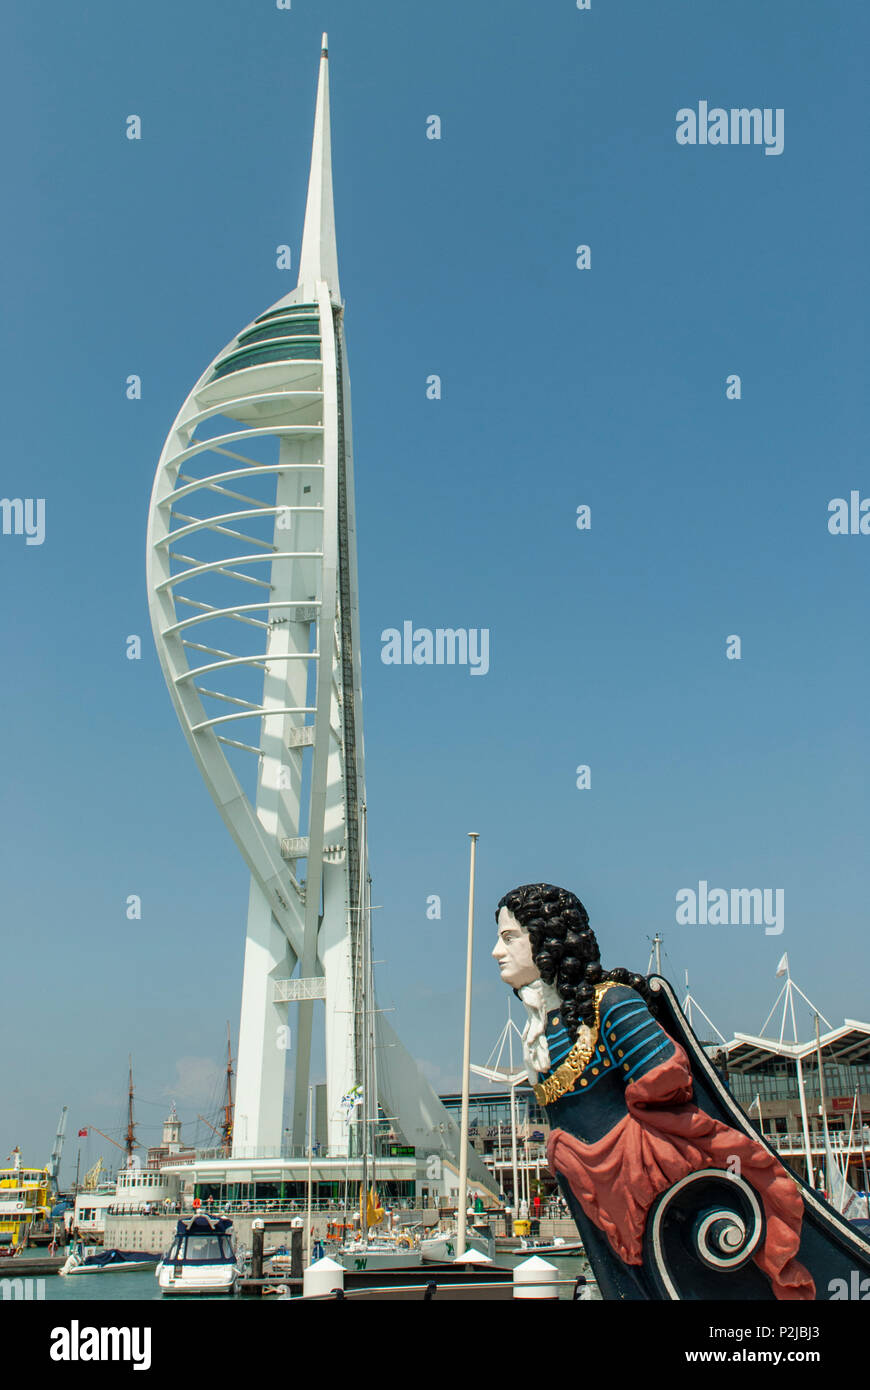 View of Spinnaker Tower with an old ships figurehead from HMS MARLBOROUGH representing the Duke of Marlborough, Gunwharf Quays, Portsmouth, UK Stock Photo